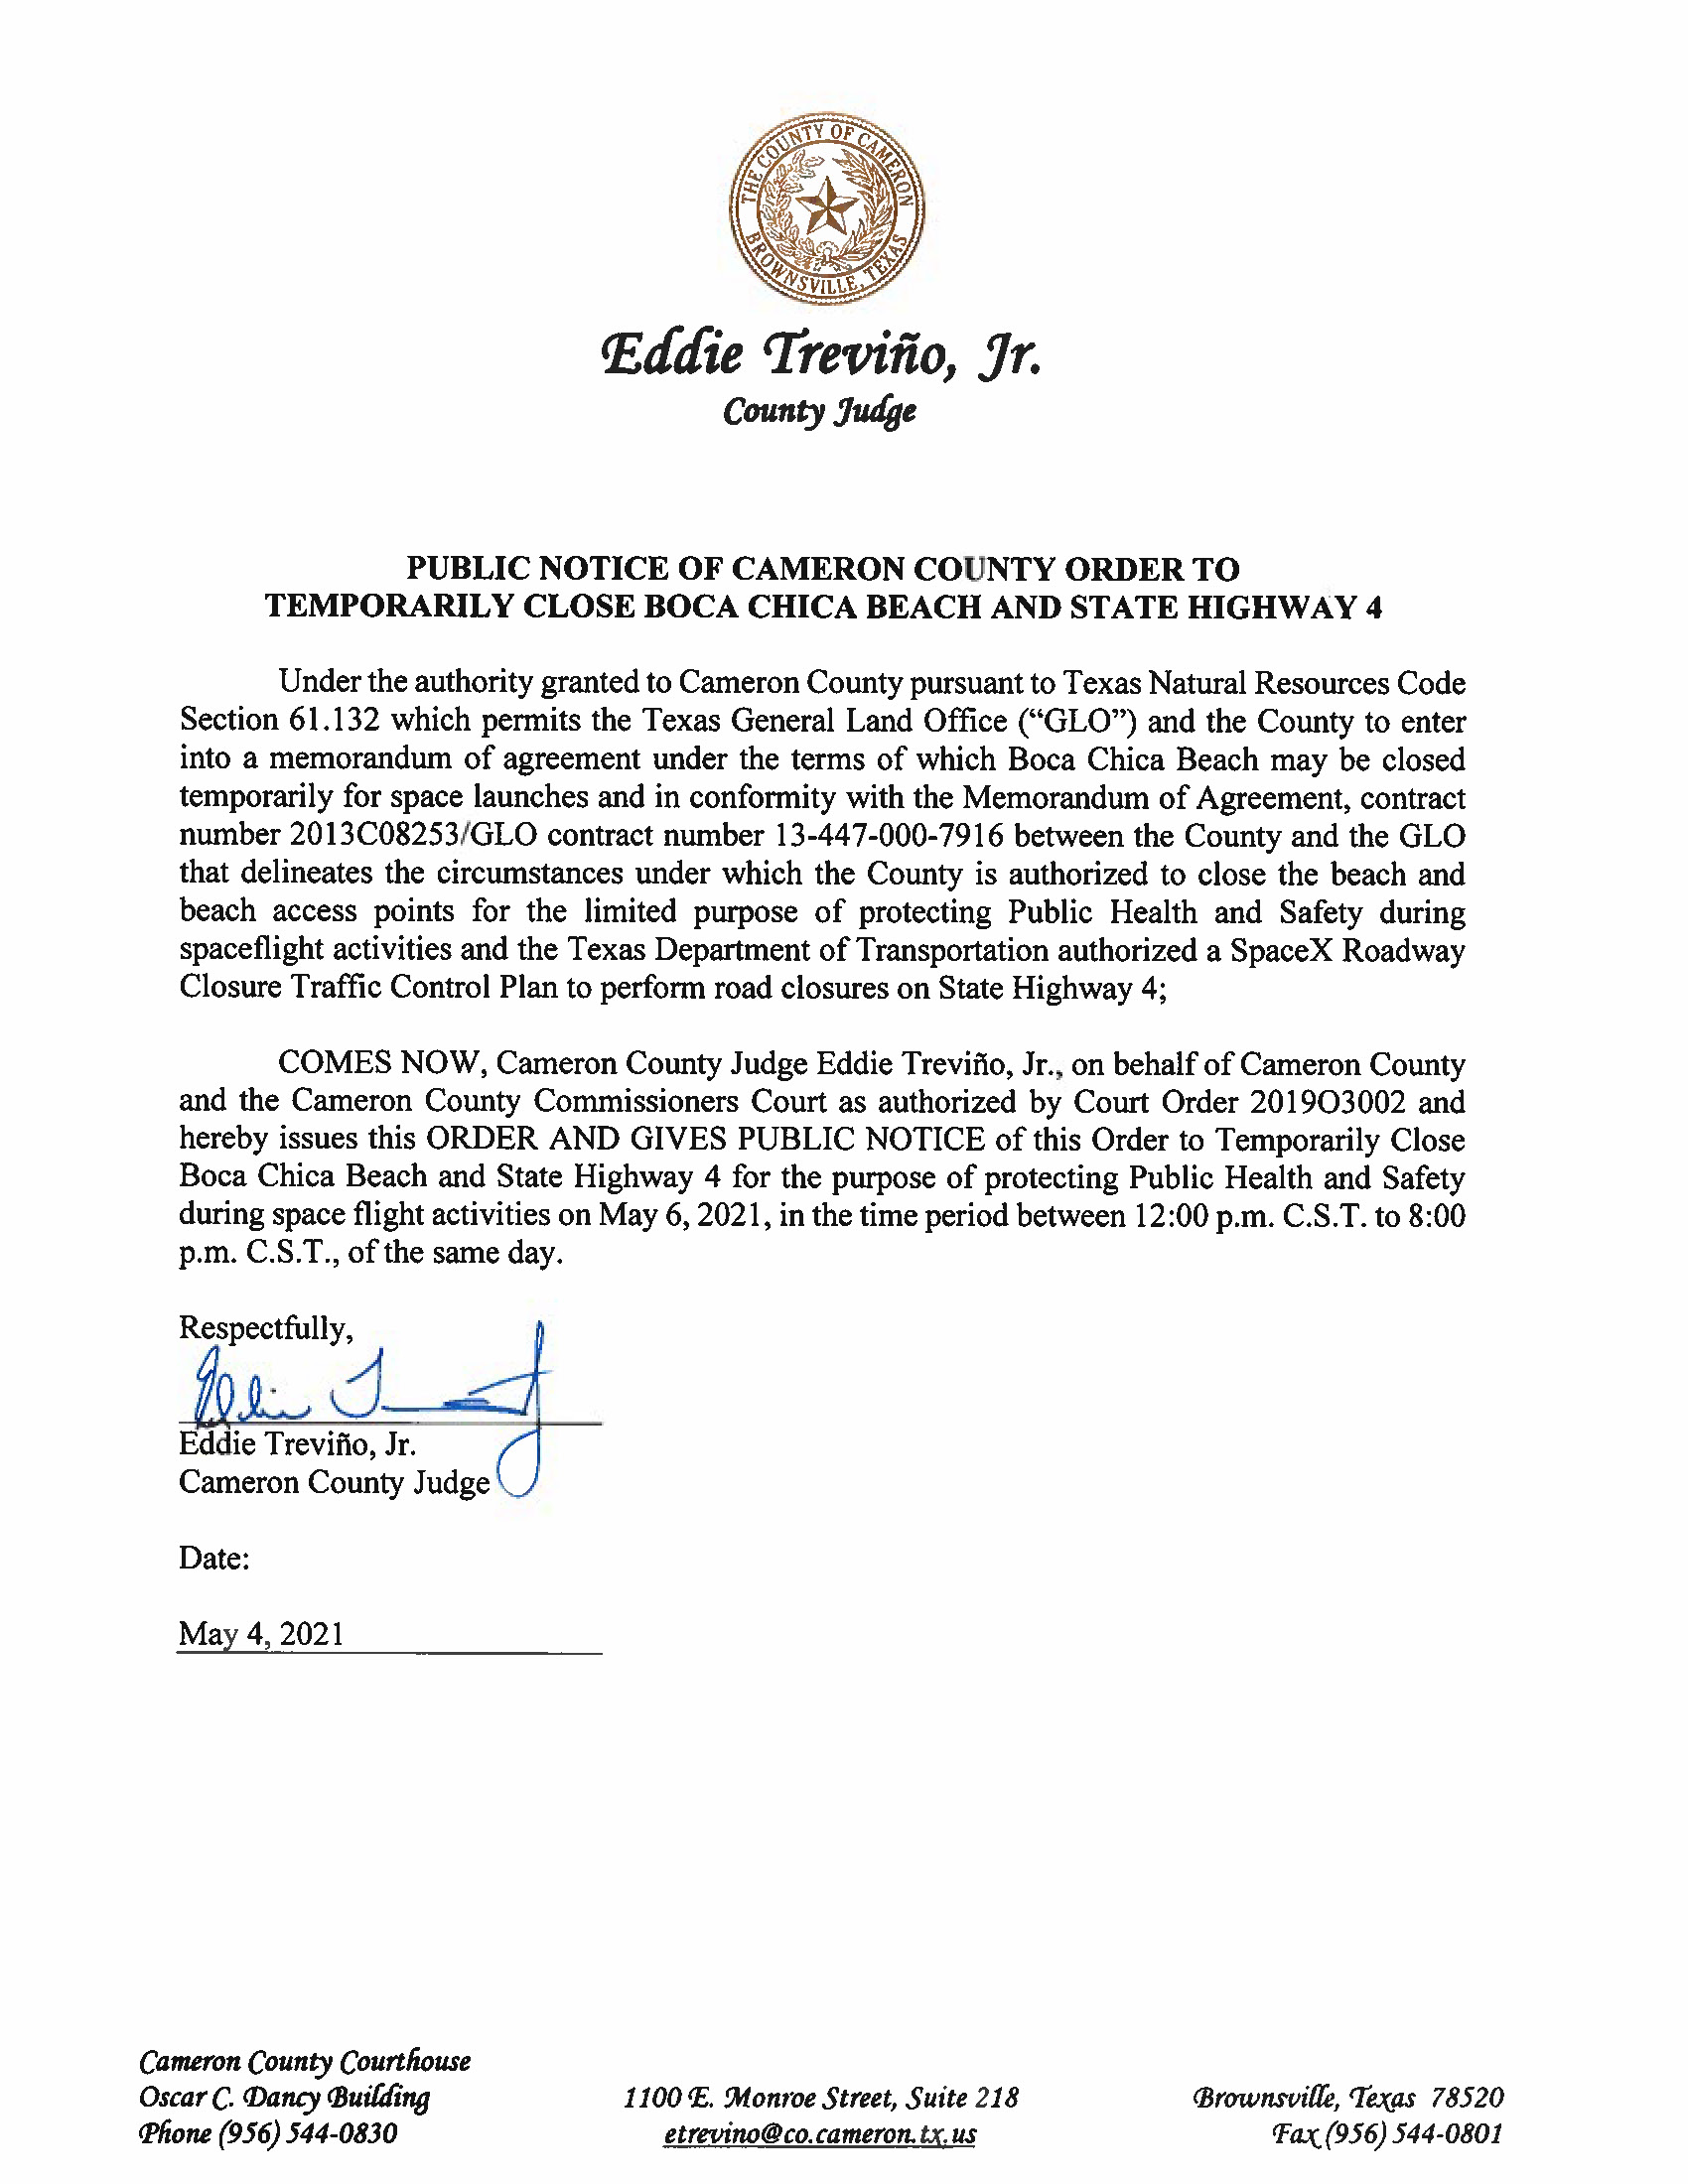 PUBLIC NOTICE OF CAMERON COUNTY ORDER TO TEMP. BEACH CLOSURE AND HWY.05.06.2021